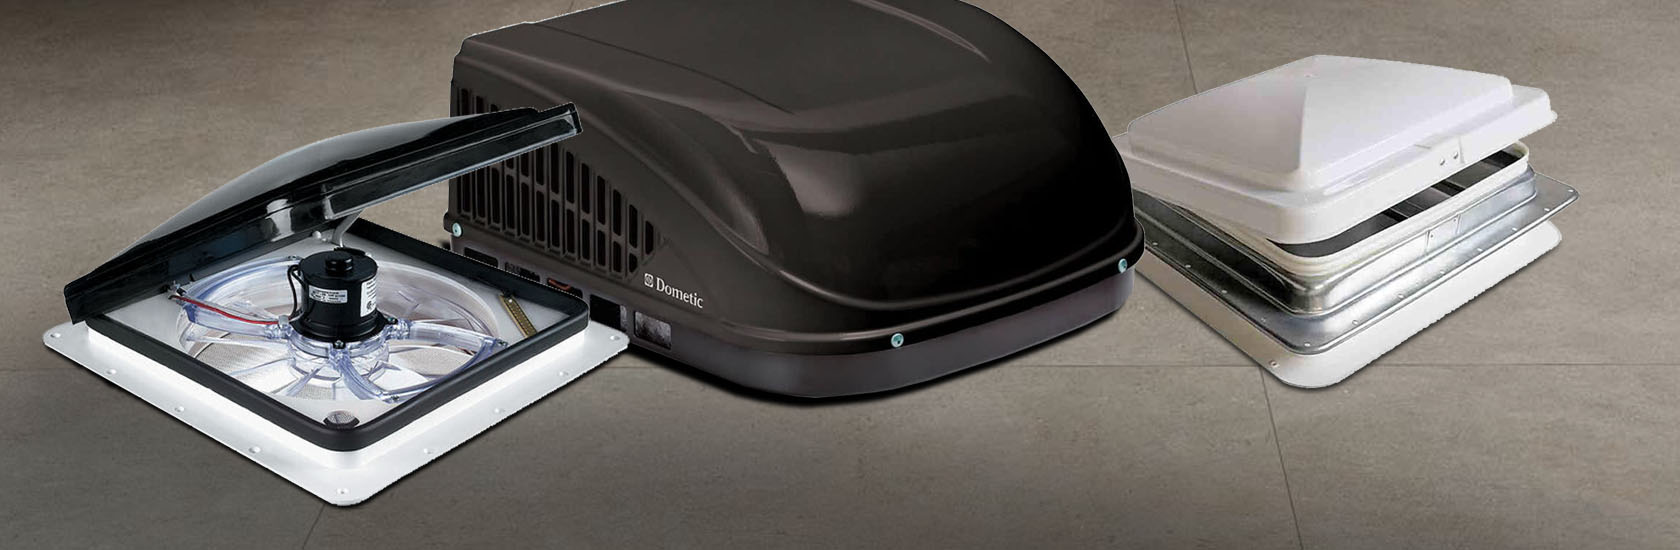 Exclusive Deals on Roof Vents, Fans & Air Conditioners